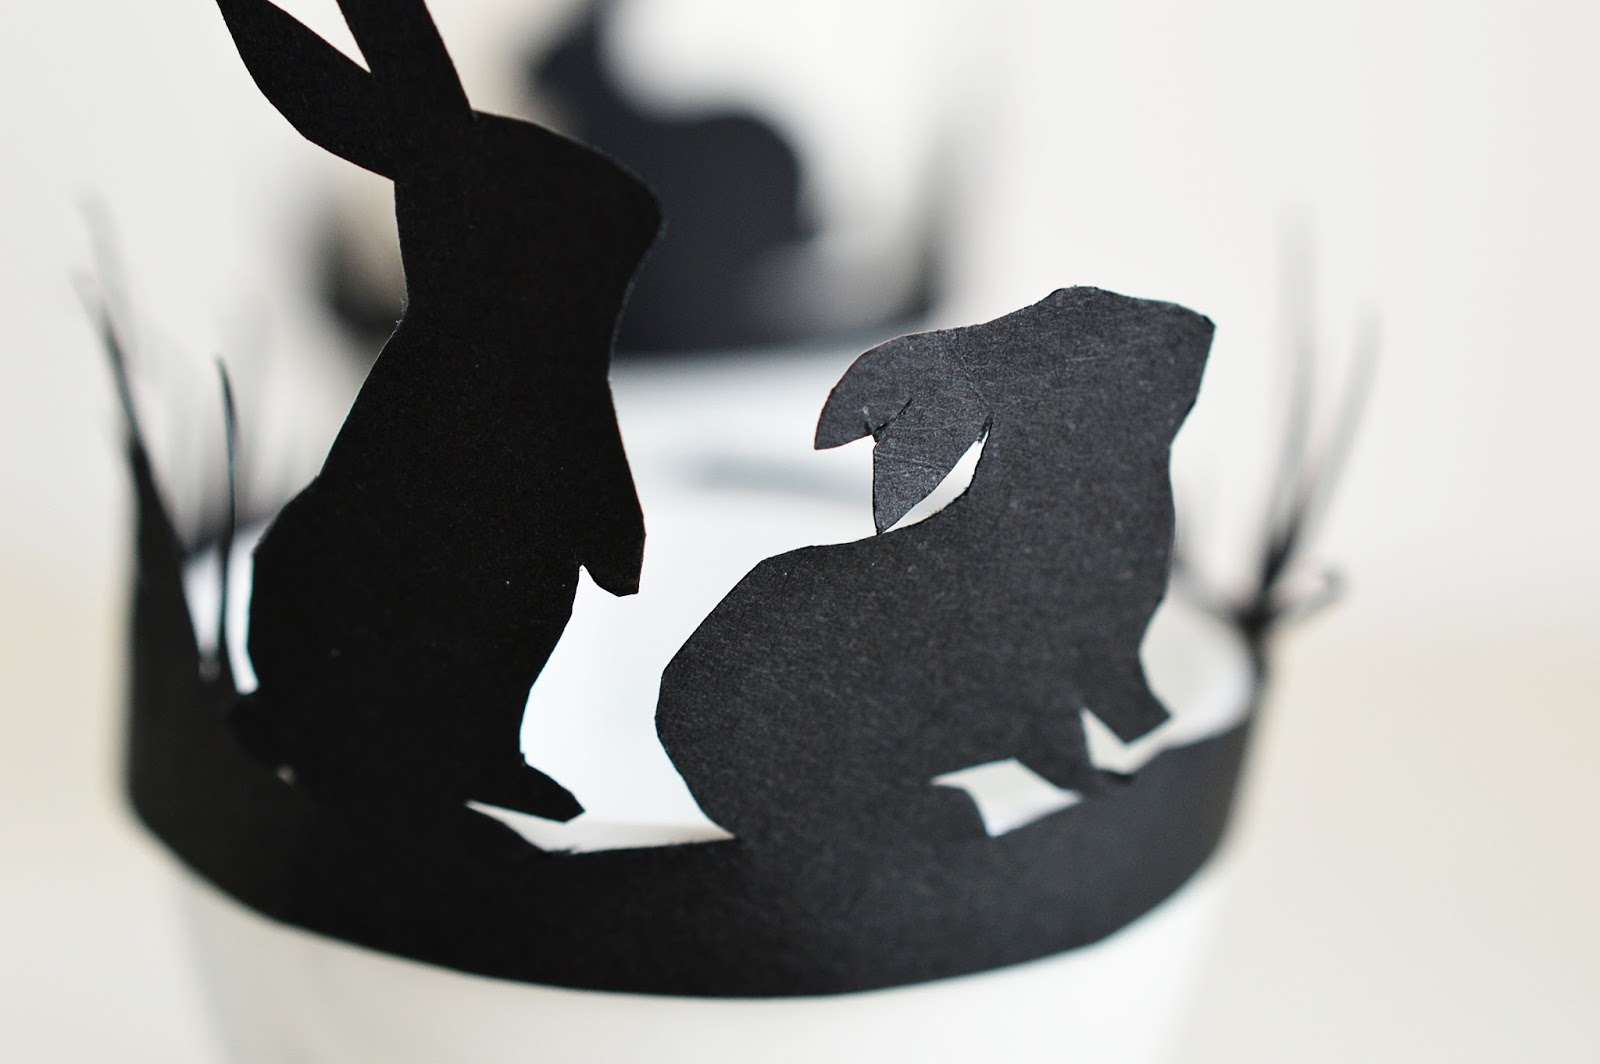 DIY Easter Egg Cup Silhouette Band | Motte's Blog